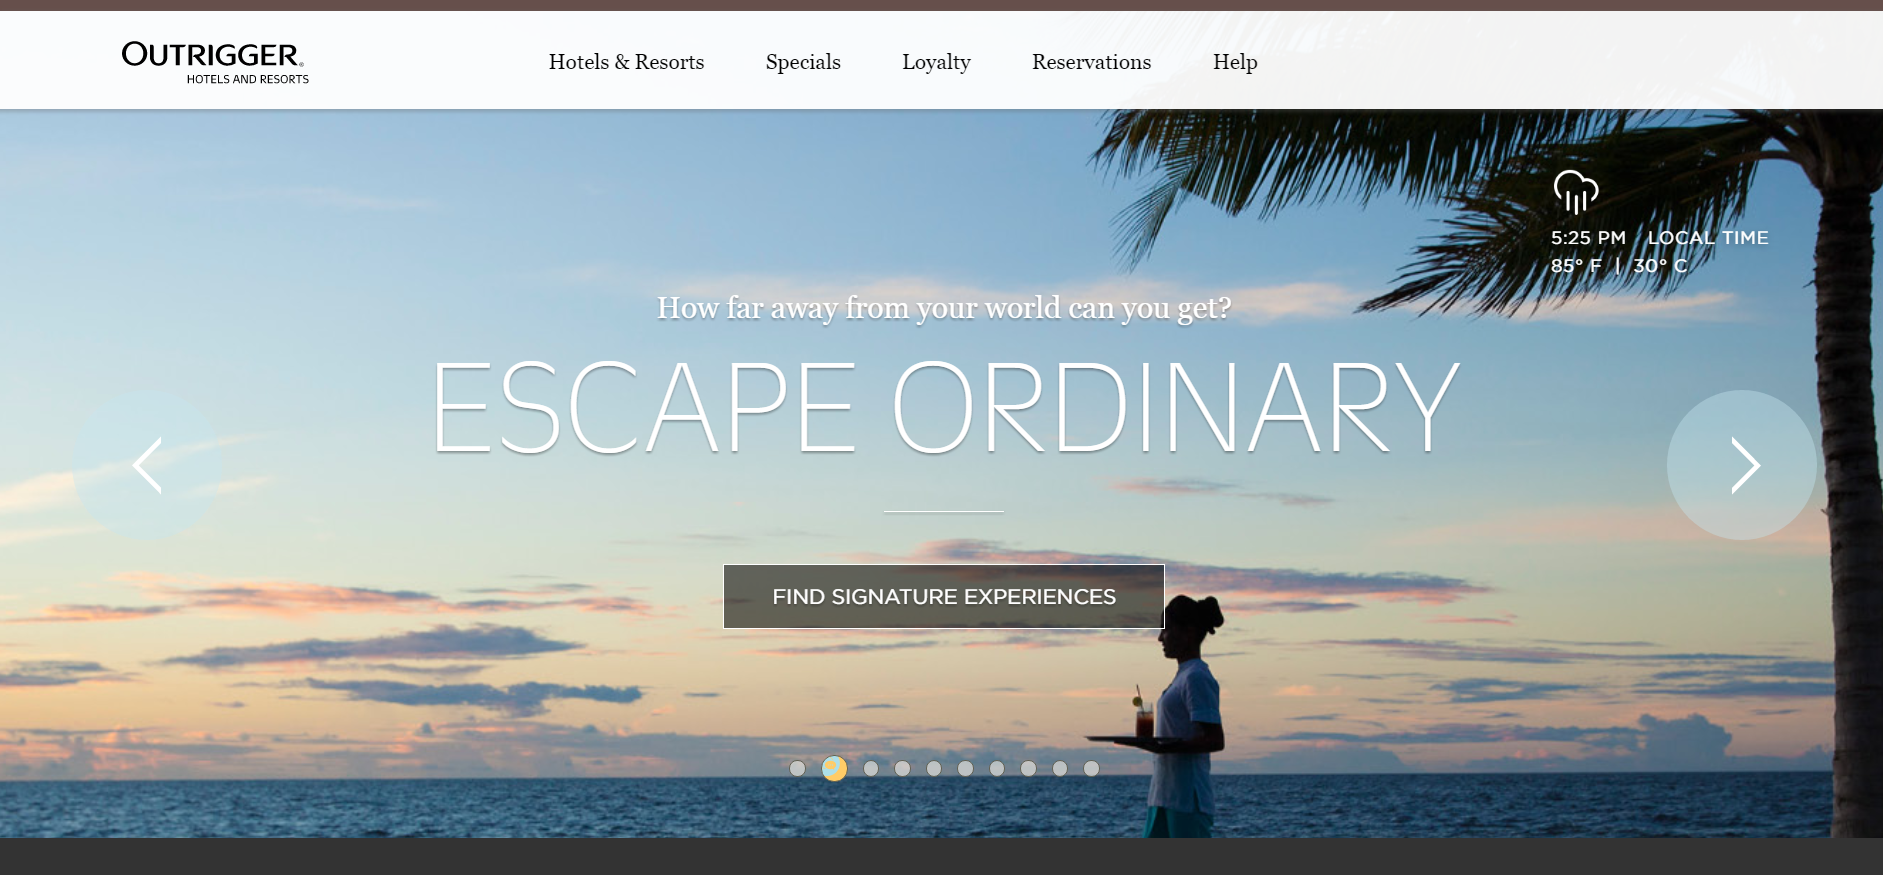 ee7f908c4 Outrigger wins Best Hotel Resort Website award